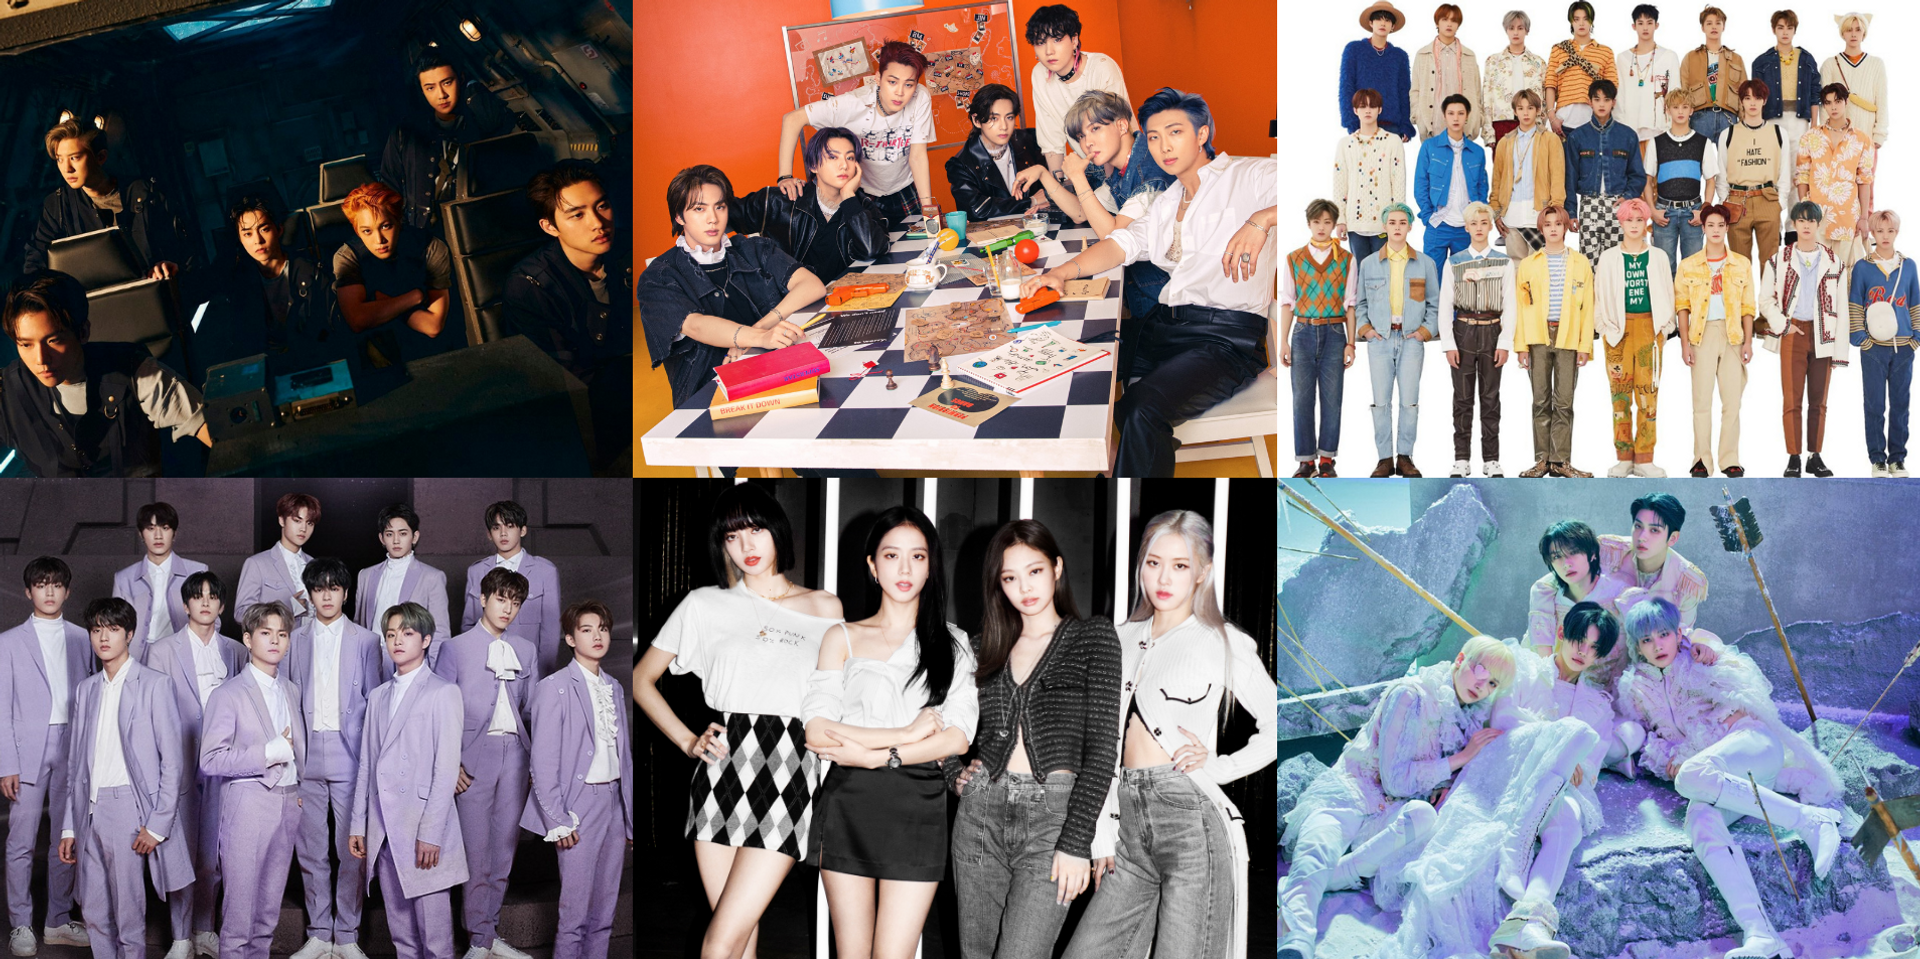 BTS, NCT, BLACKPINK, EXO, TREASURE, TXT, and more are the most-talked-about K-pop acts on Twitter